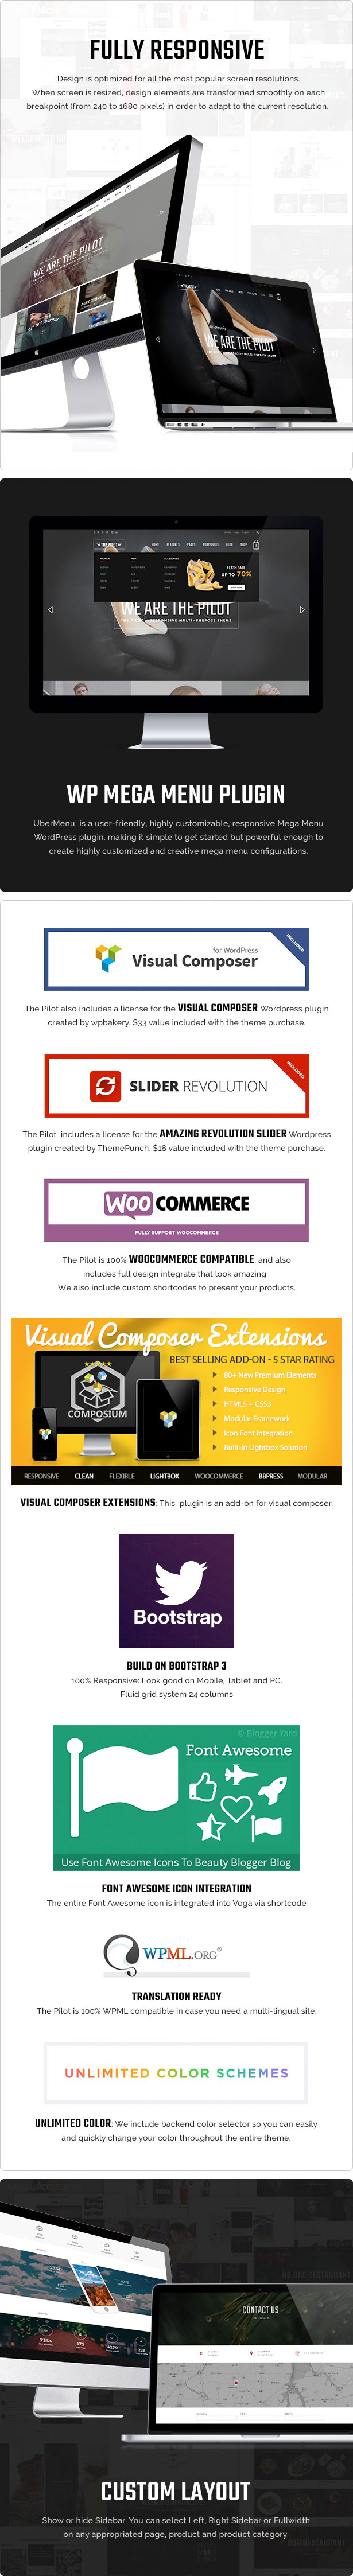 Wordpress Woo General  Download ThePilot | Premium Responsive WooCommerce Theme Best For Fashion Corporate Fitness Blog Magazine nulled feature4